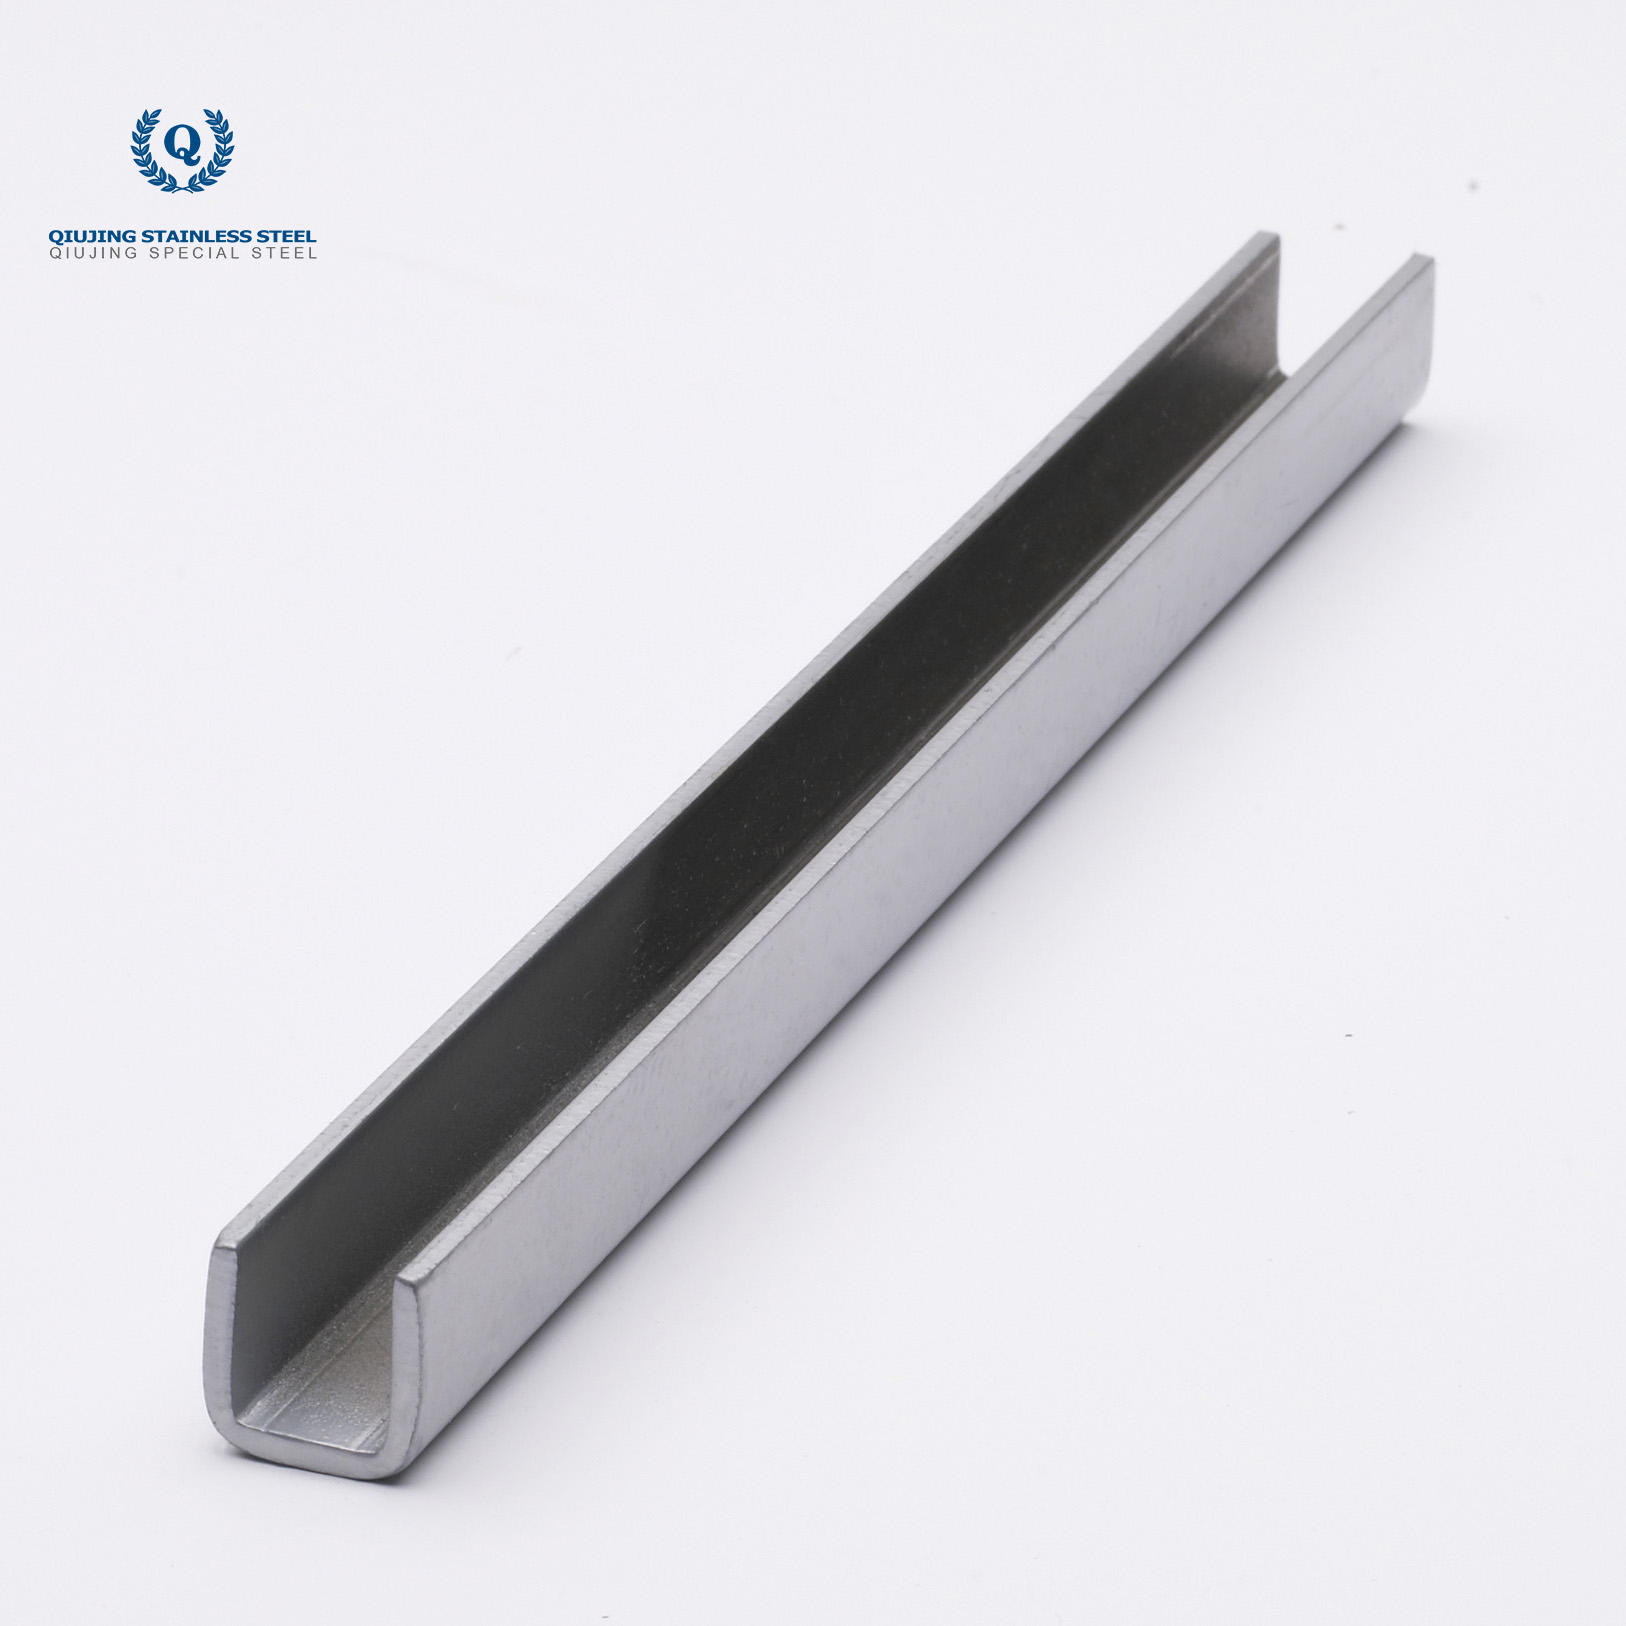 Professional standard light steel furring stainless steel c channel beam sizes